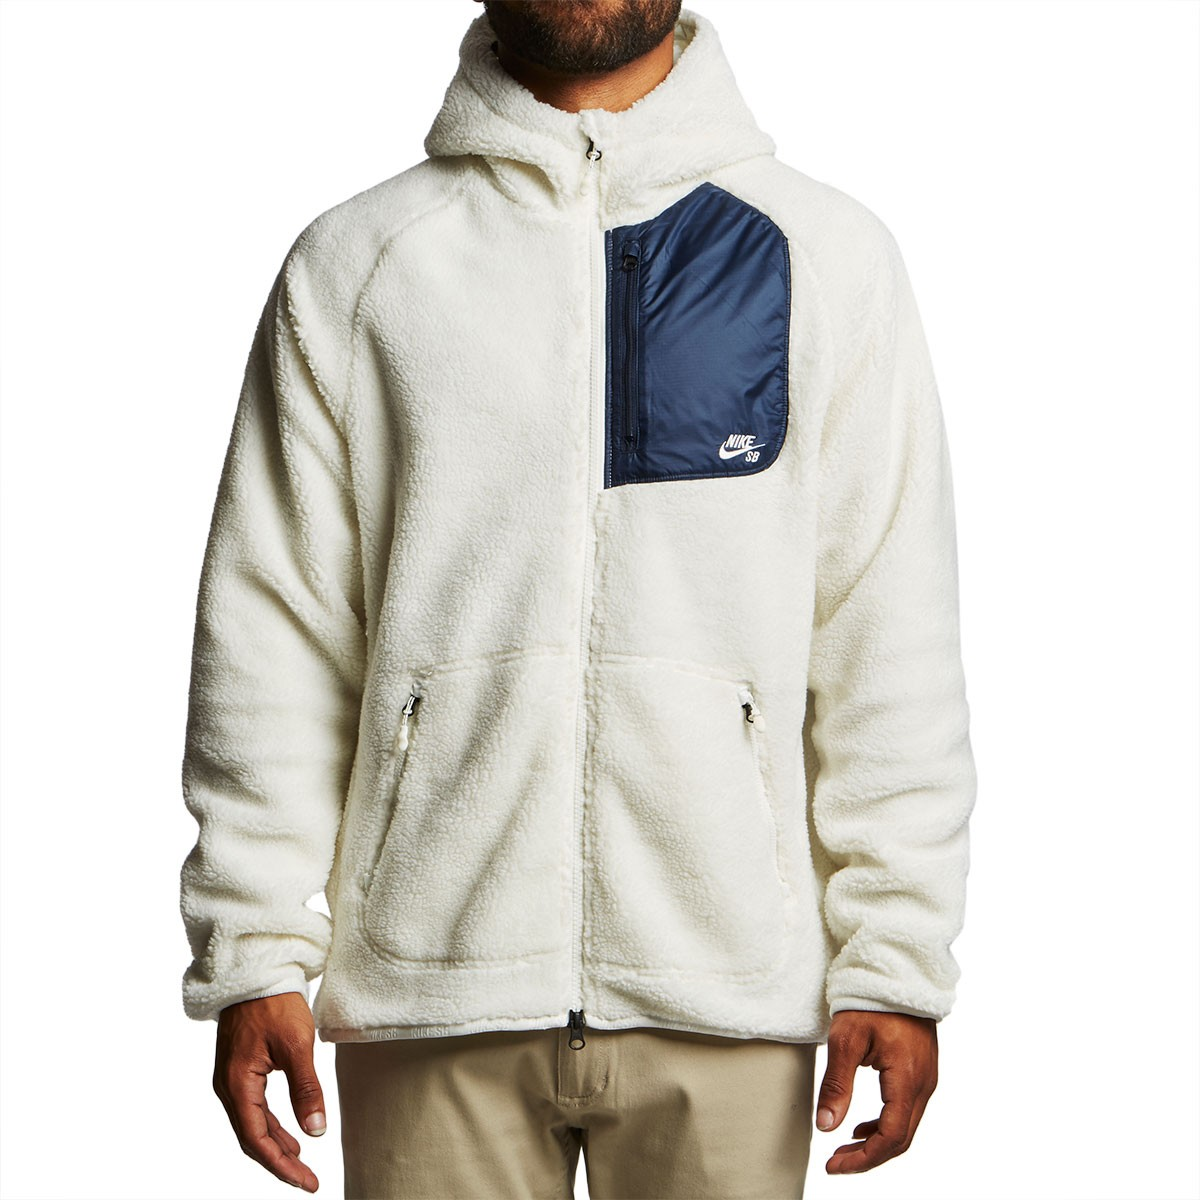 new release cheap prices lowest discount Nike SB Everett Full Zip Sherpa Hoodie - Sail/Black/Sail